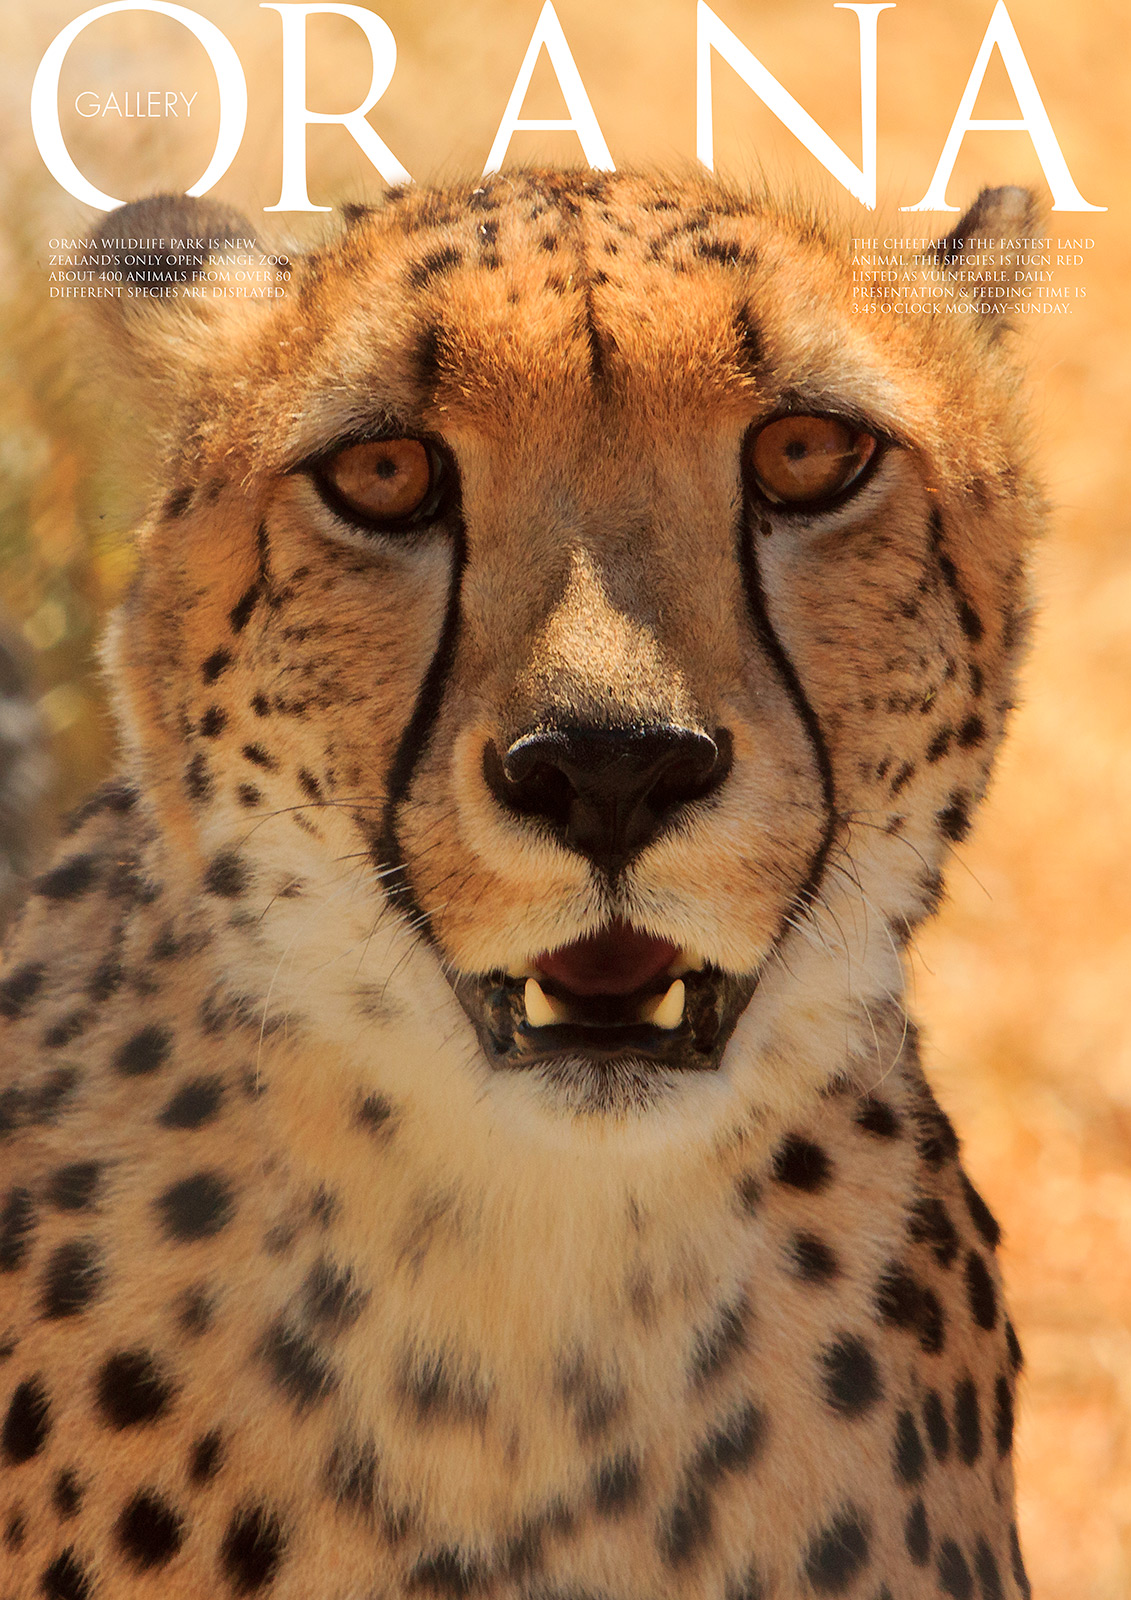 Wildlife Photo portrait of a Cheetah at Orana Wildlife Park